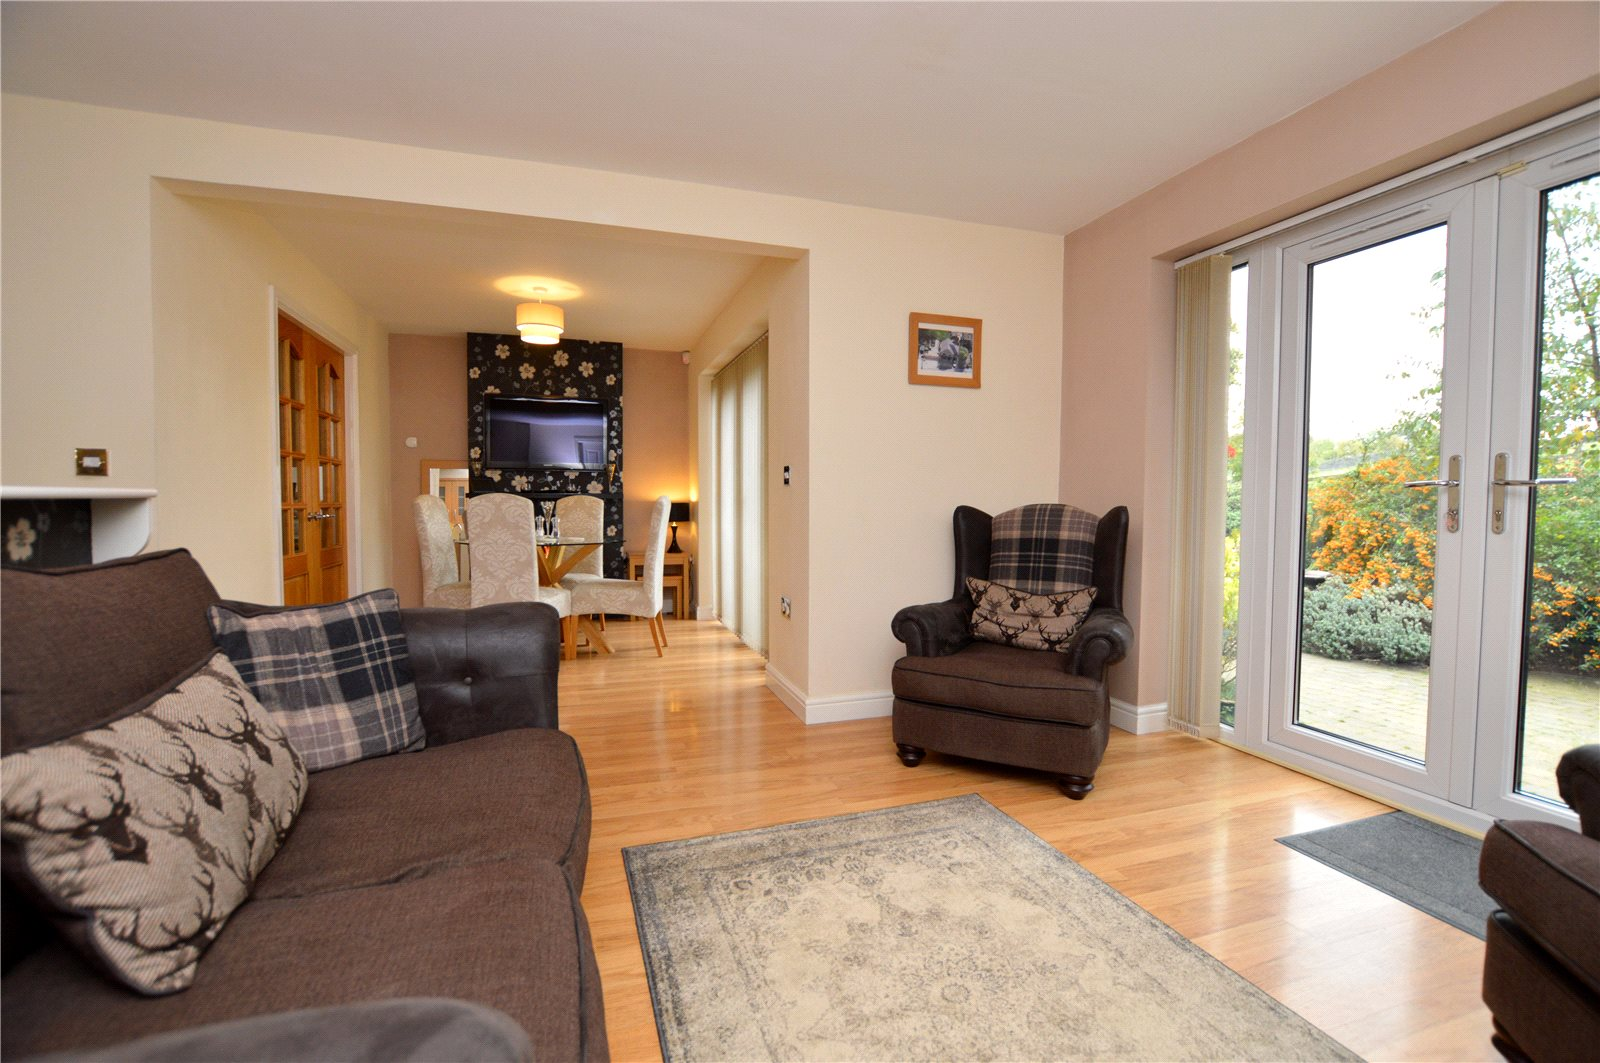 property for sale in Pudsey, interior open plan reception room and dining room